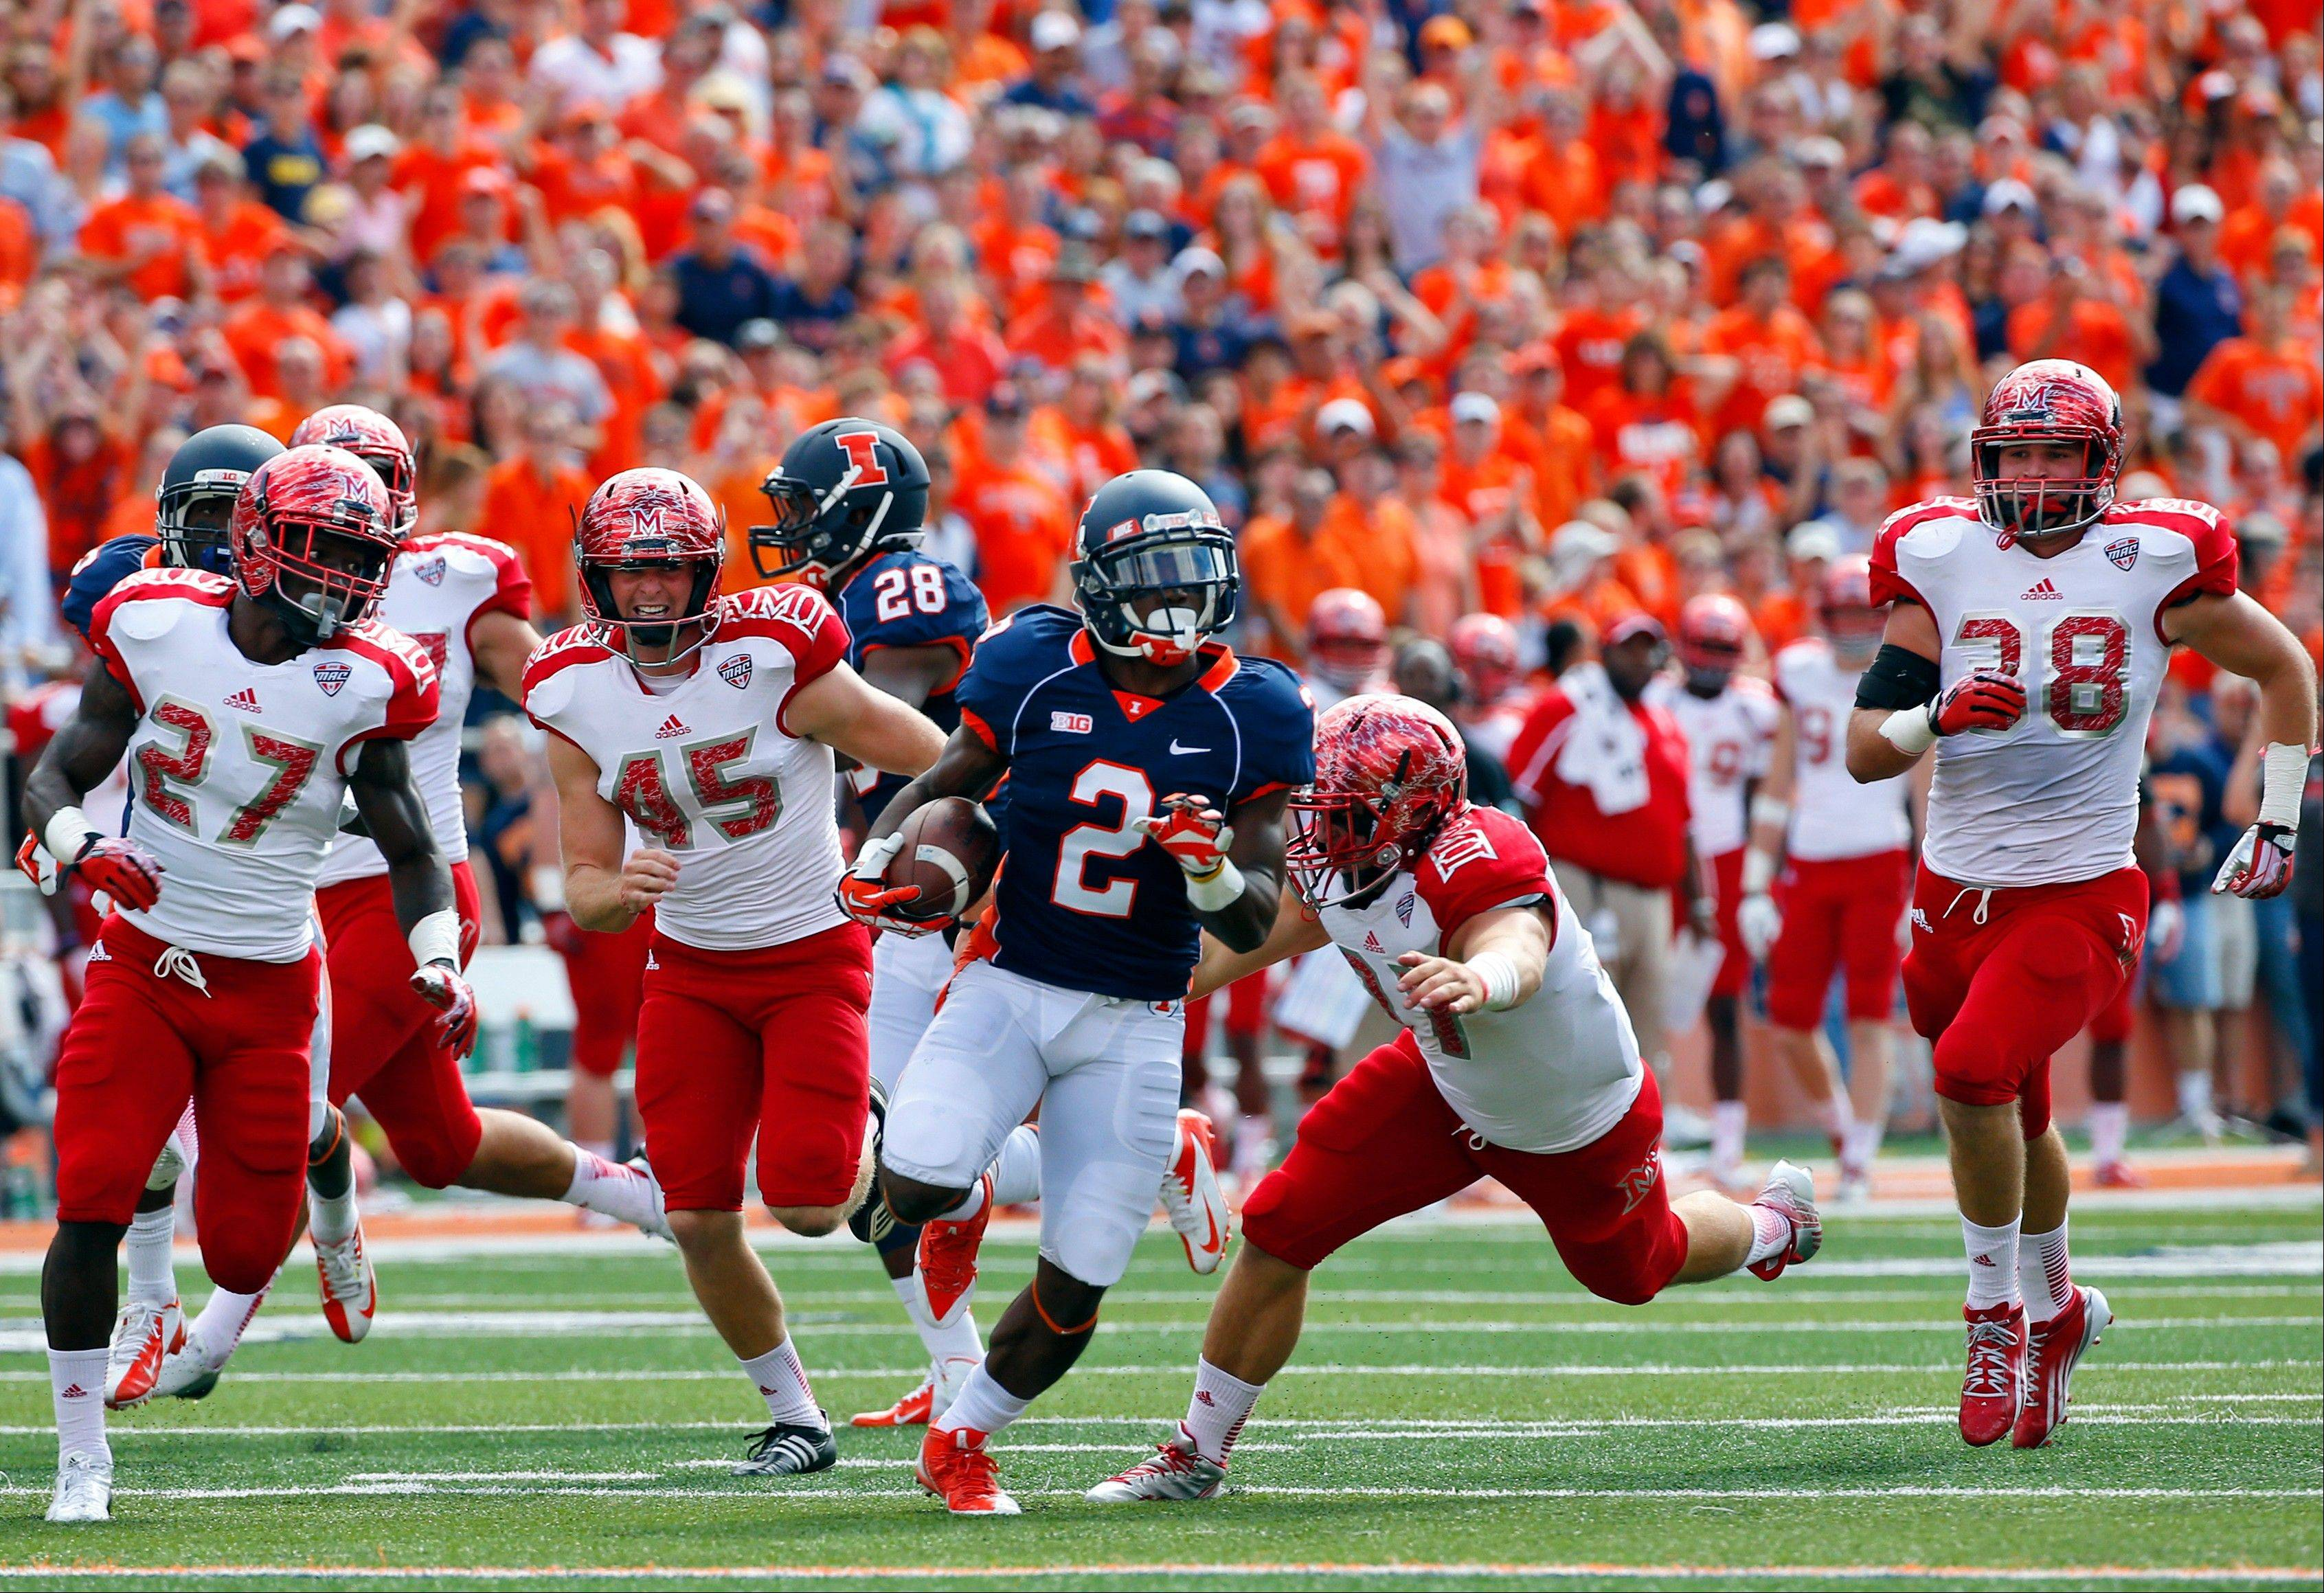 Illinois punt returner V'Angelo Bentley (2) is chased down by Miami (Ohio) defensive back Jarrell Jones (27) kicker Zac Murphy (45), running back Grant Niemiec (37) and linebacker Tyler Tucker (38) during the first half of an NCAA college football game on Saturday, Sept. 28, 2013, at Memorial Stadium in Champaign, Ill. (AP Photo/Jeff Haynes)